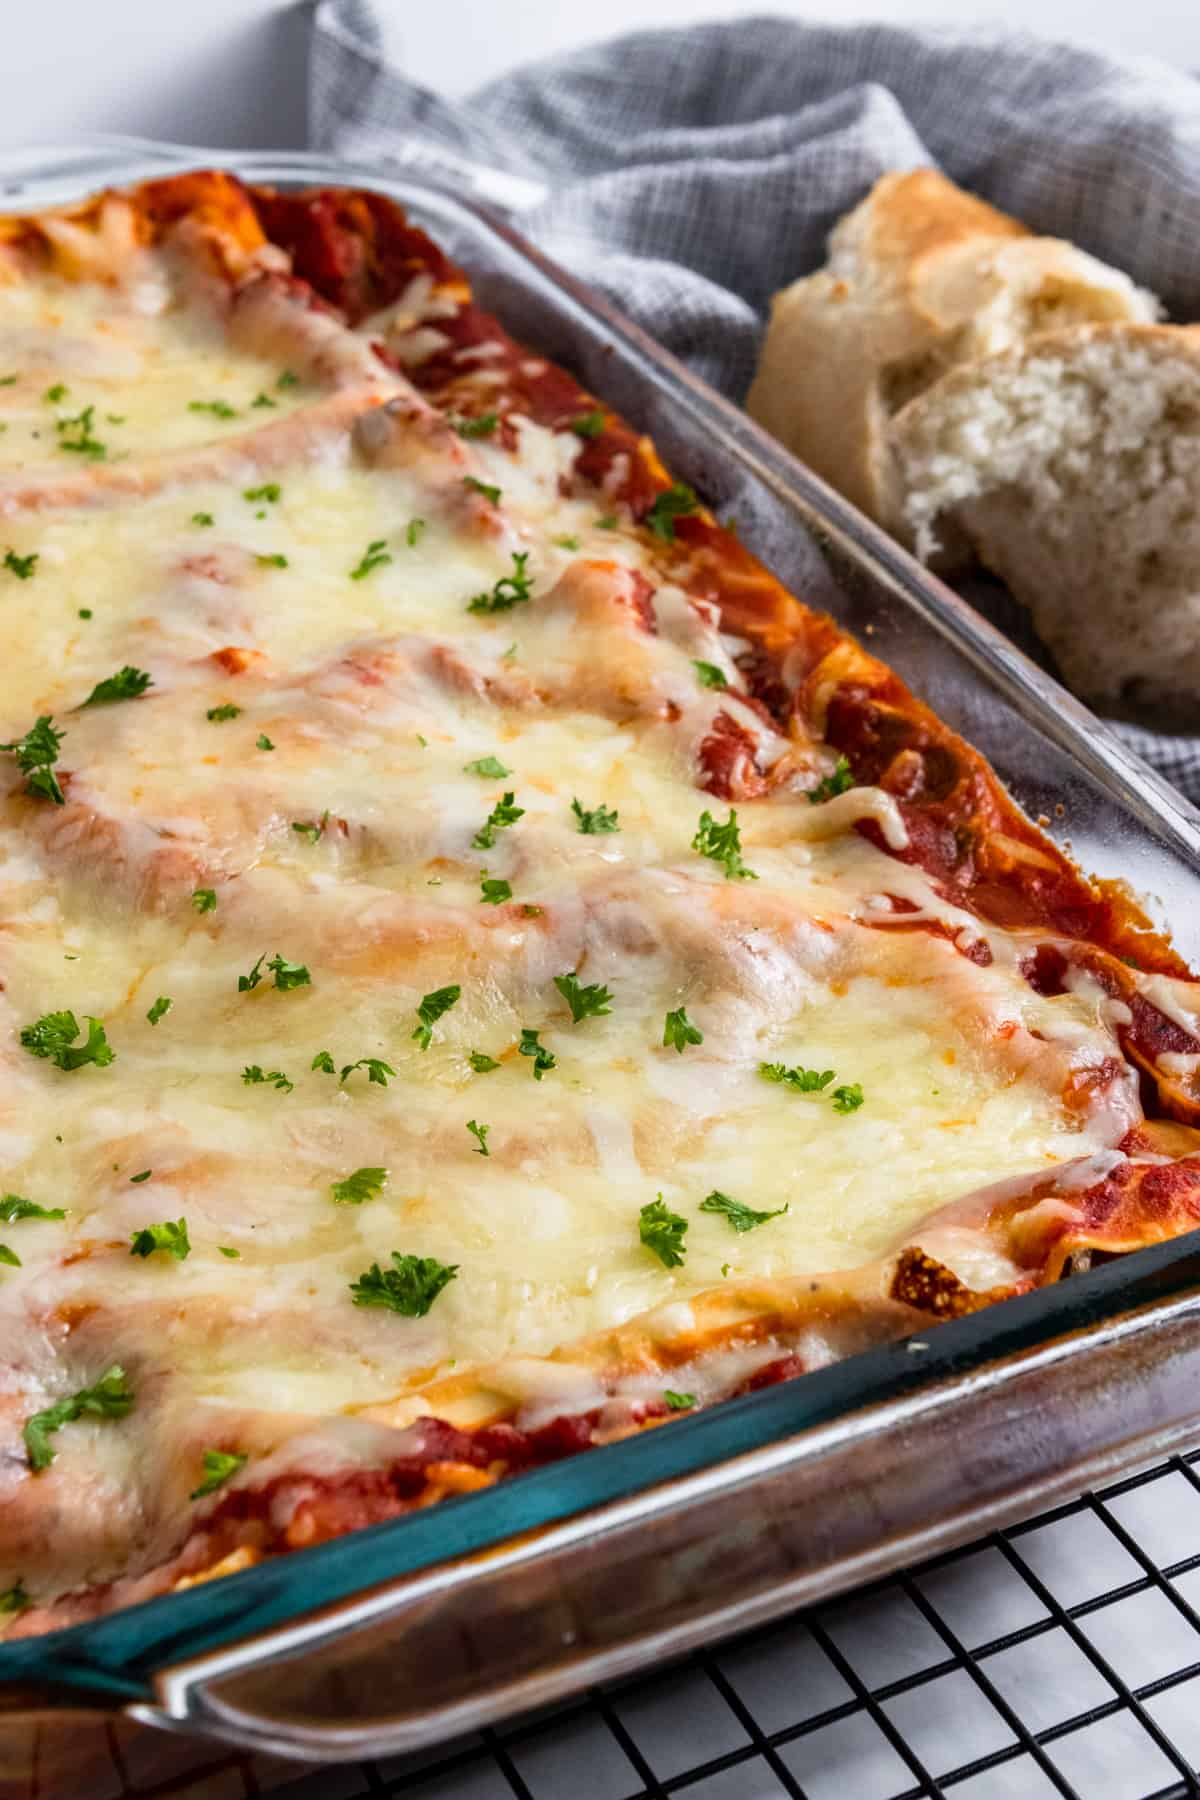 Pan with lasagna and bread beside it.